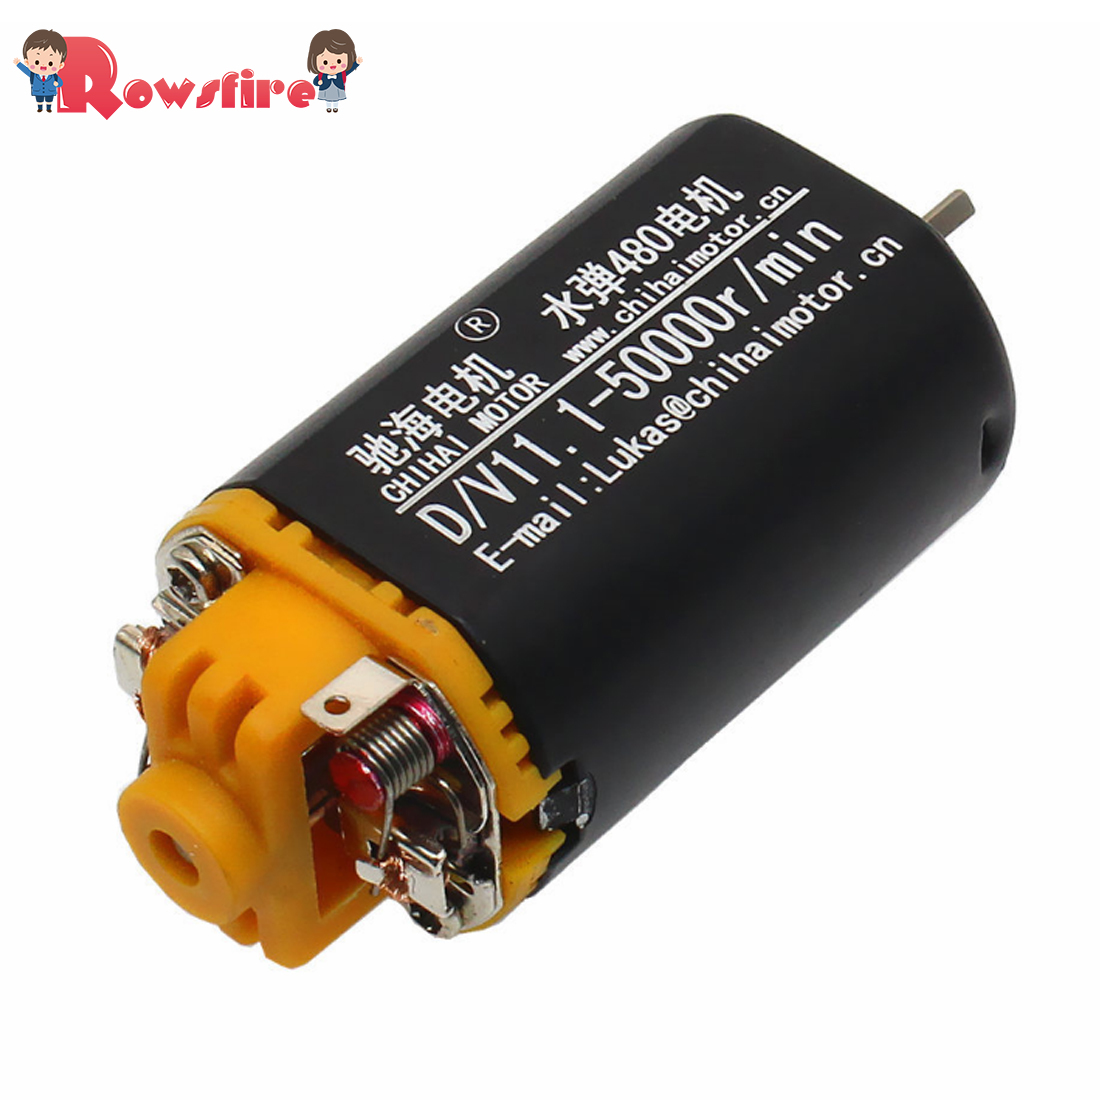 FK480Double Ball Bearing 2.0 Shaft D Hole 11.1v 5000RPM Motor For MKM2 Racing Gearbox Modification With 480 Gearbox